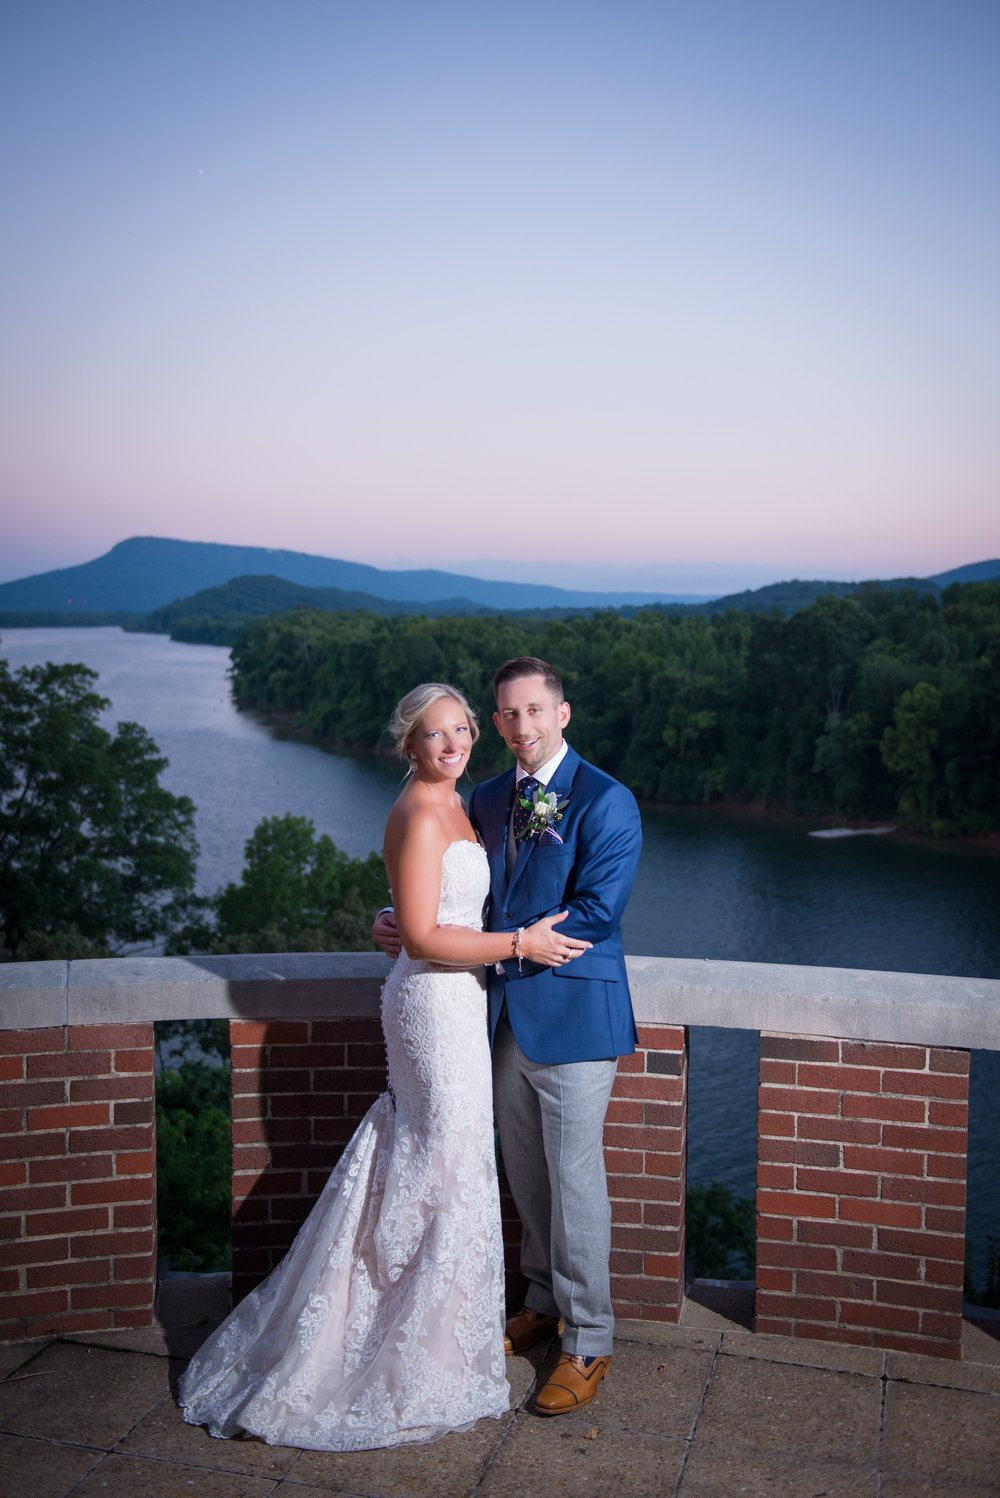 00001_Stover-WeddingSp-124.jpg